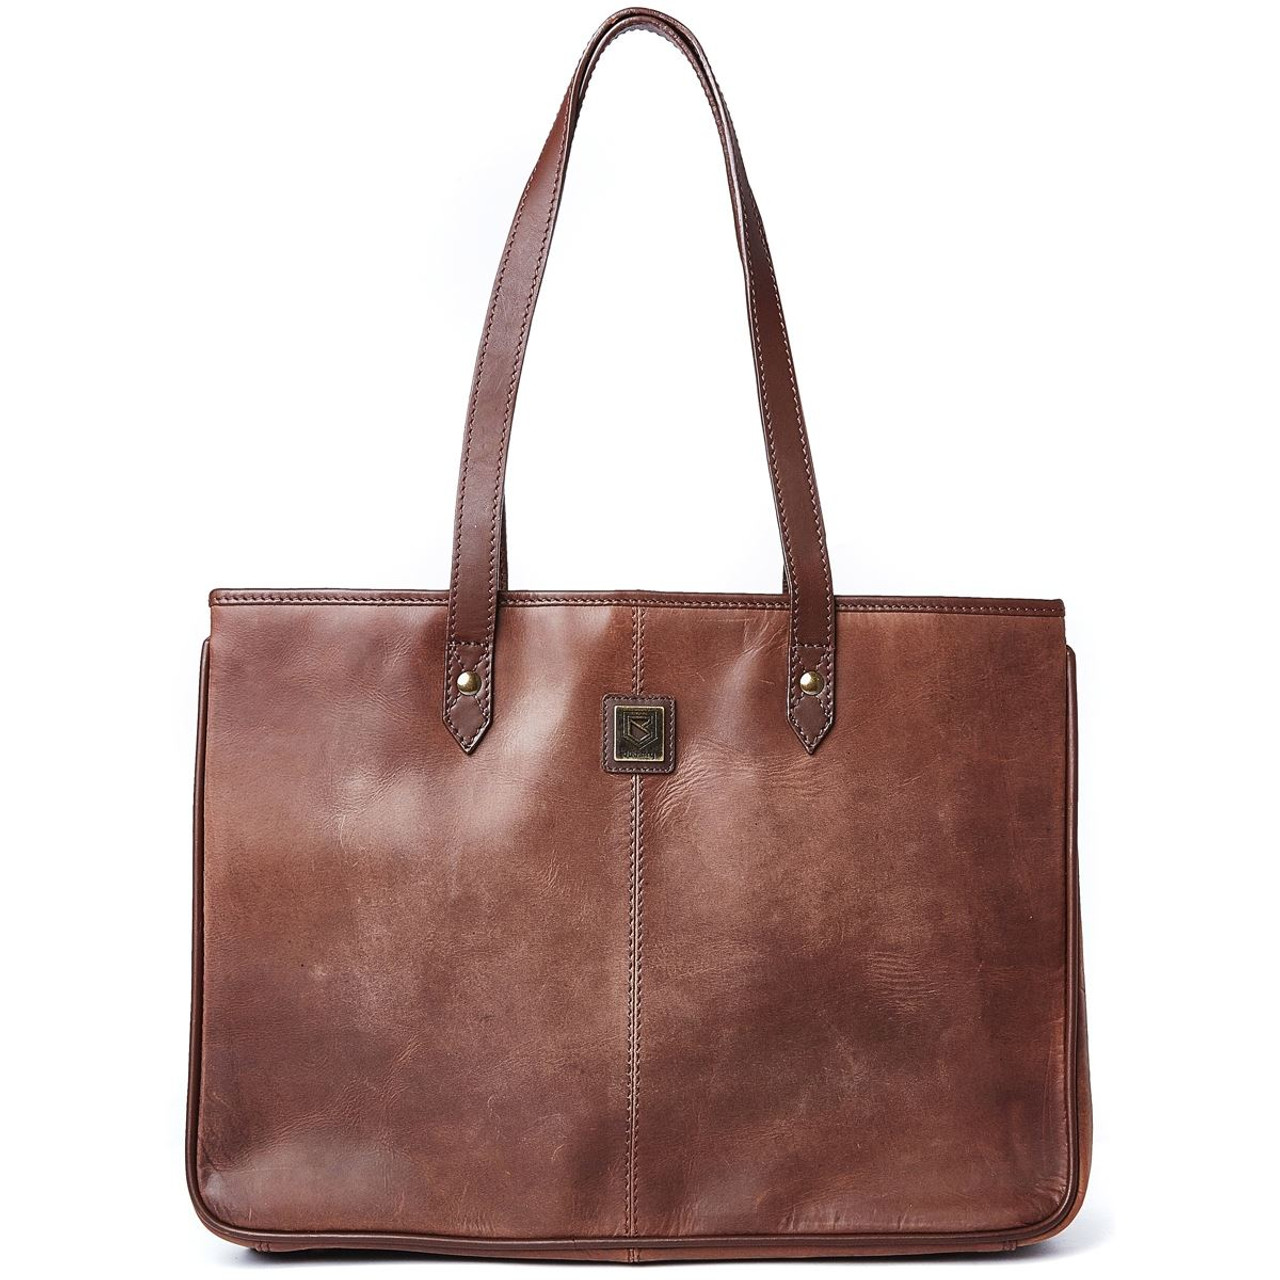 Dubarry Loughrea Tote Bag in Old Rum